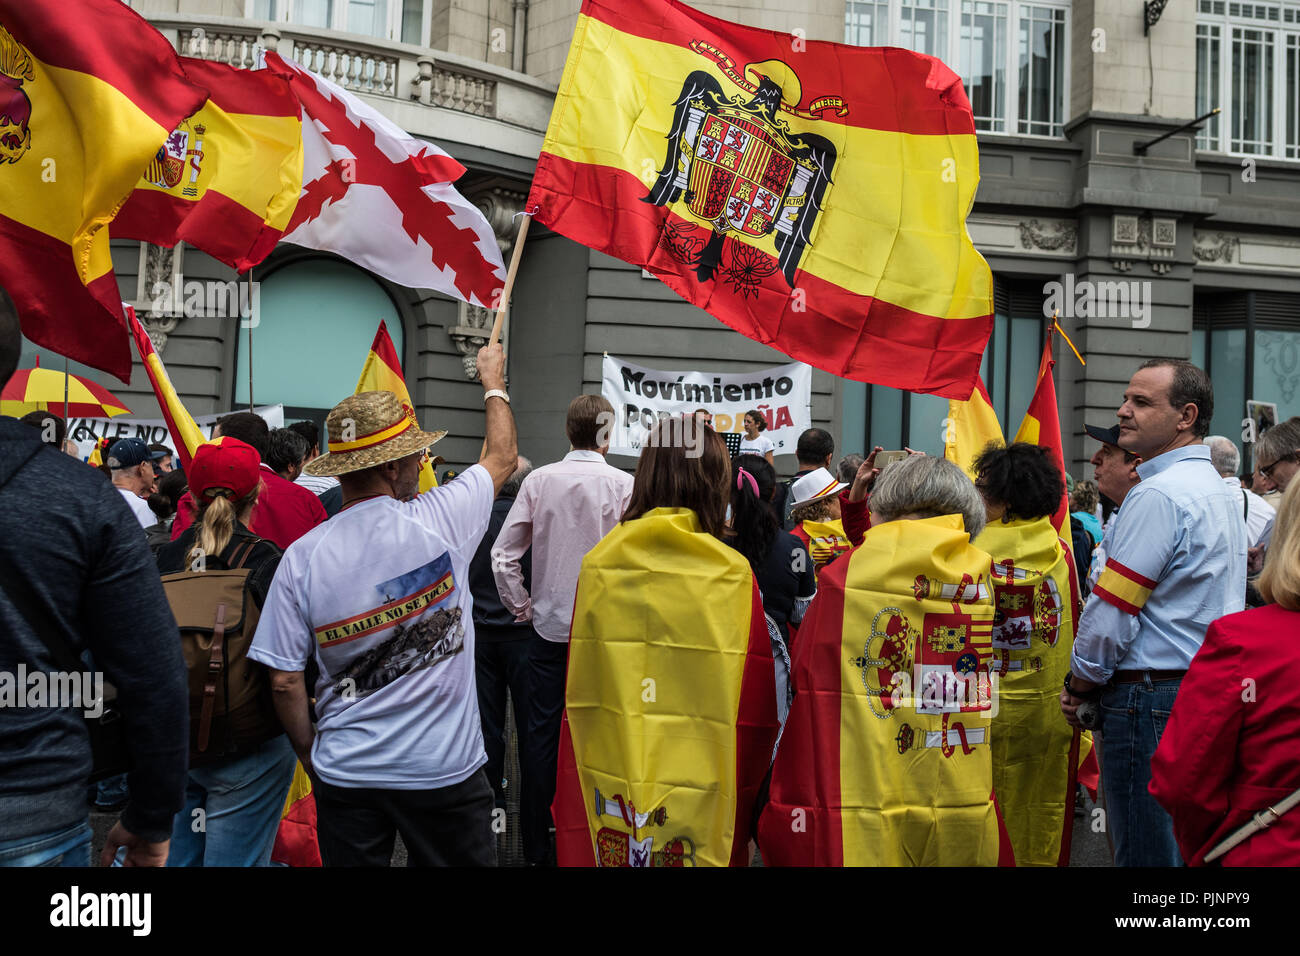 Madrid, Spain. 8th September, 2018. People protesting with flags of Franco's times against the removal of dictator Franco's remains from the Valley of the Fallen, in Madrid, Spain. Credit: Marcos del Mazo/Alamy Live News Stock Photo